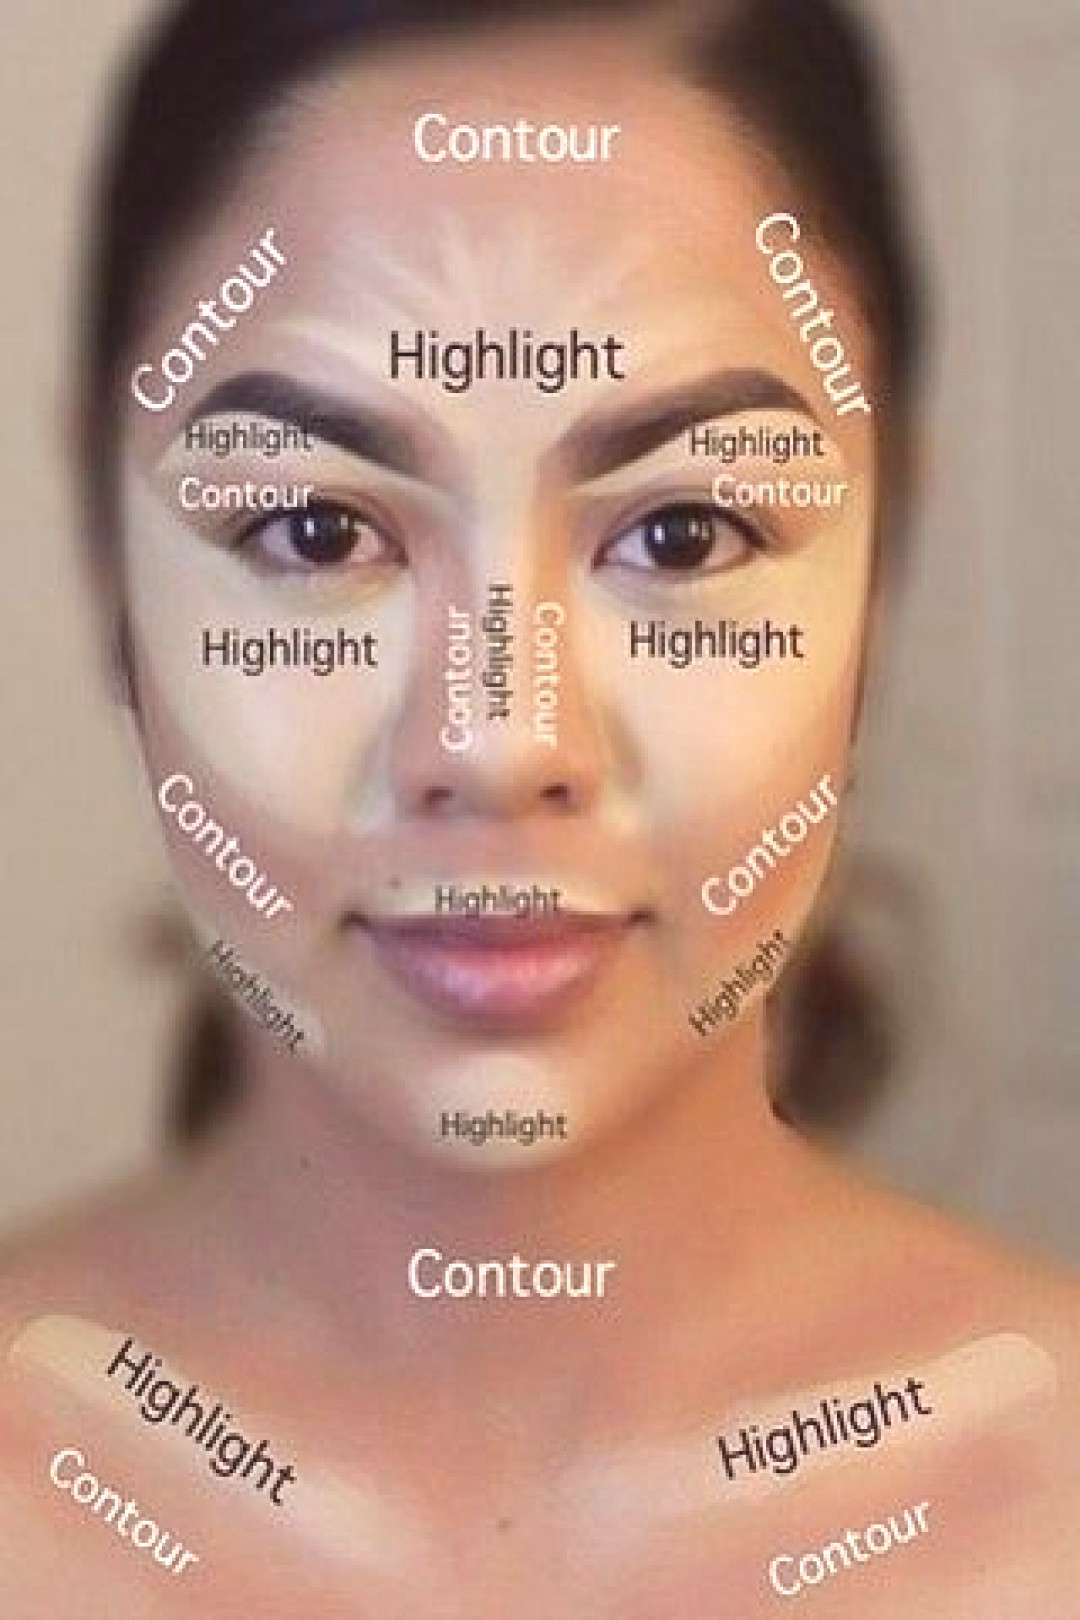 Highlighting and Contouring for Beginners - Highlighting and Contouring for Beginners 5 Steps -